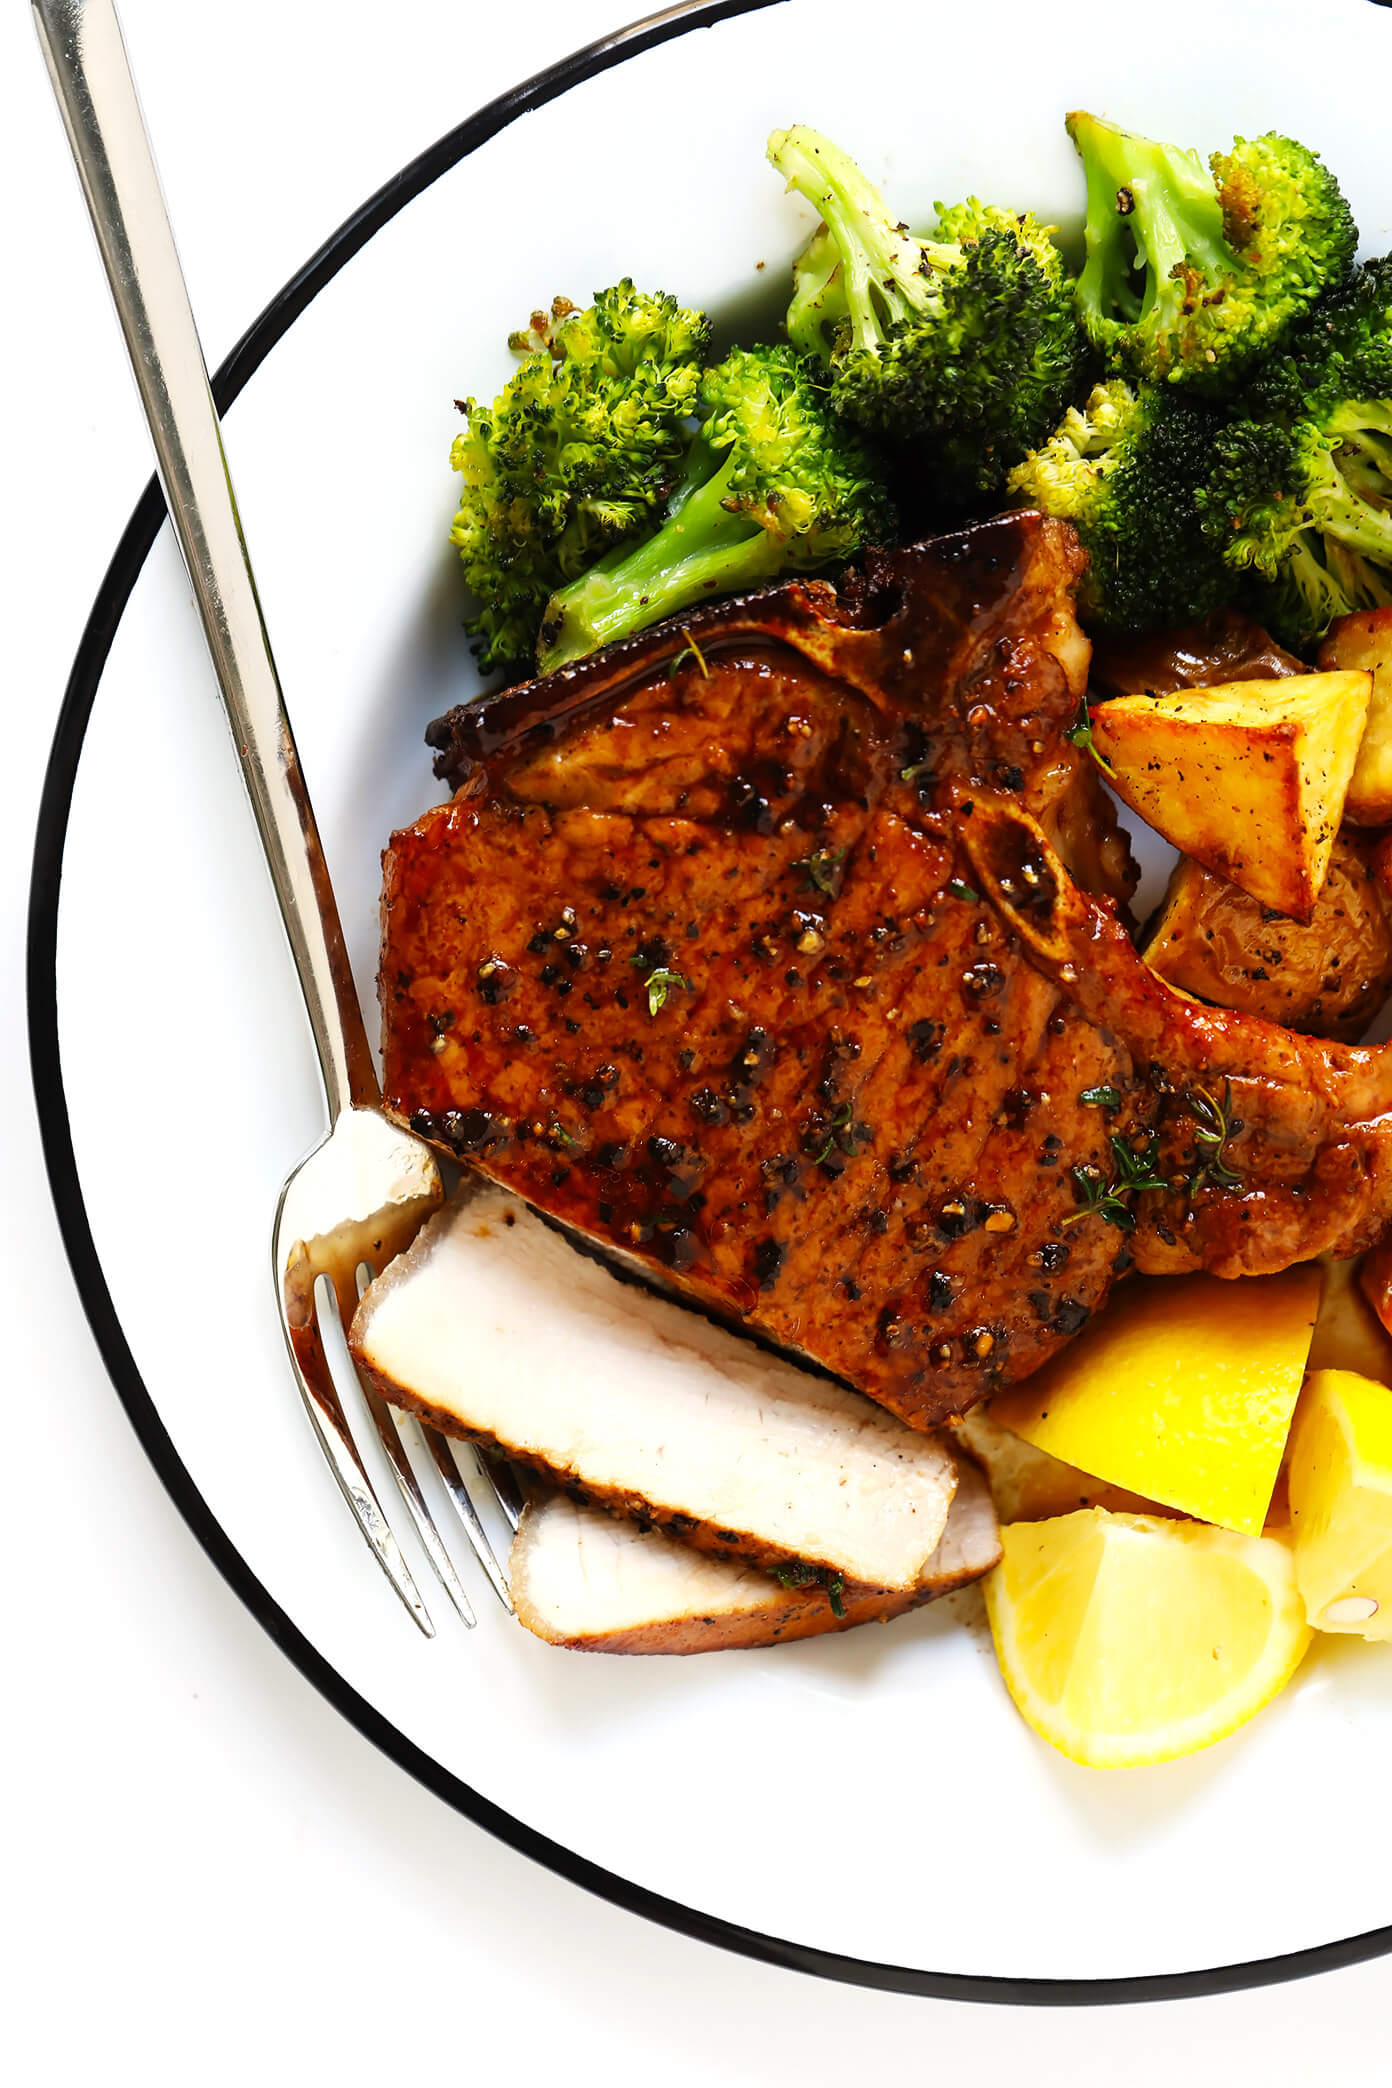 How to Cook Pork Chops - The Spruce Eats